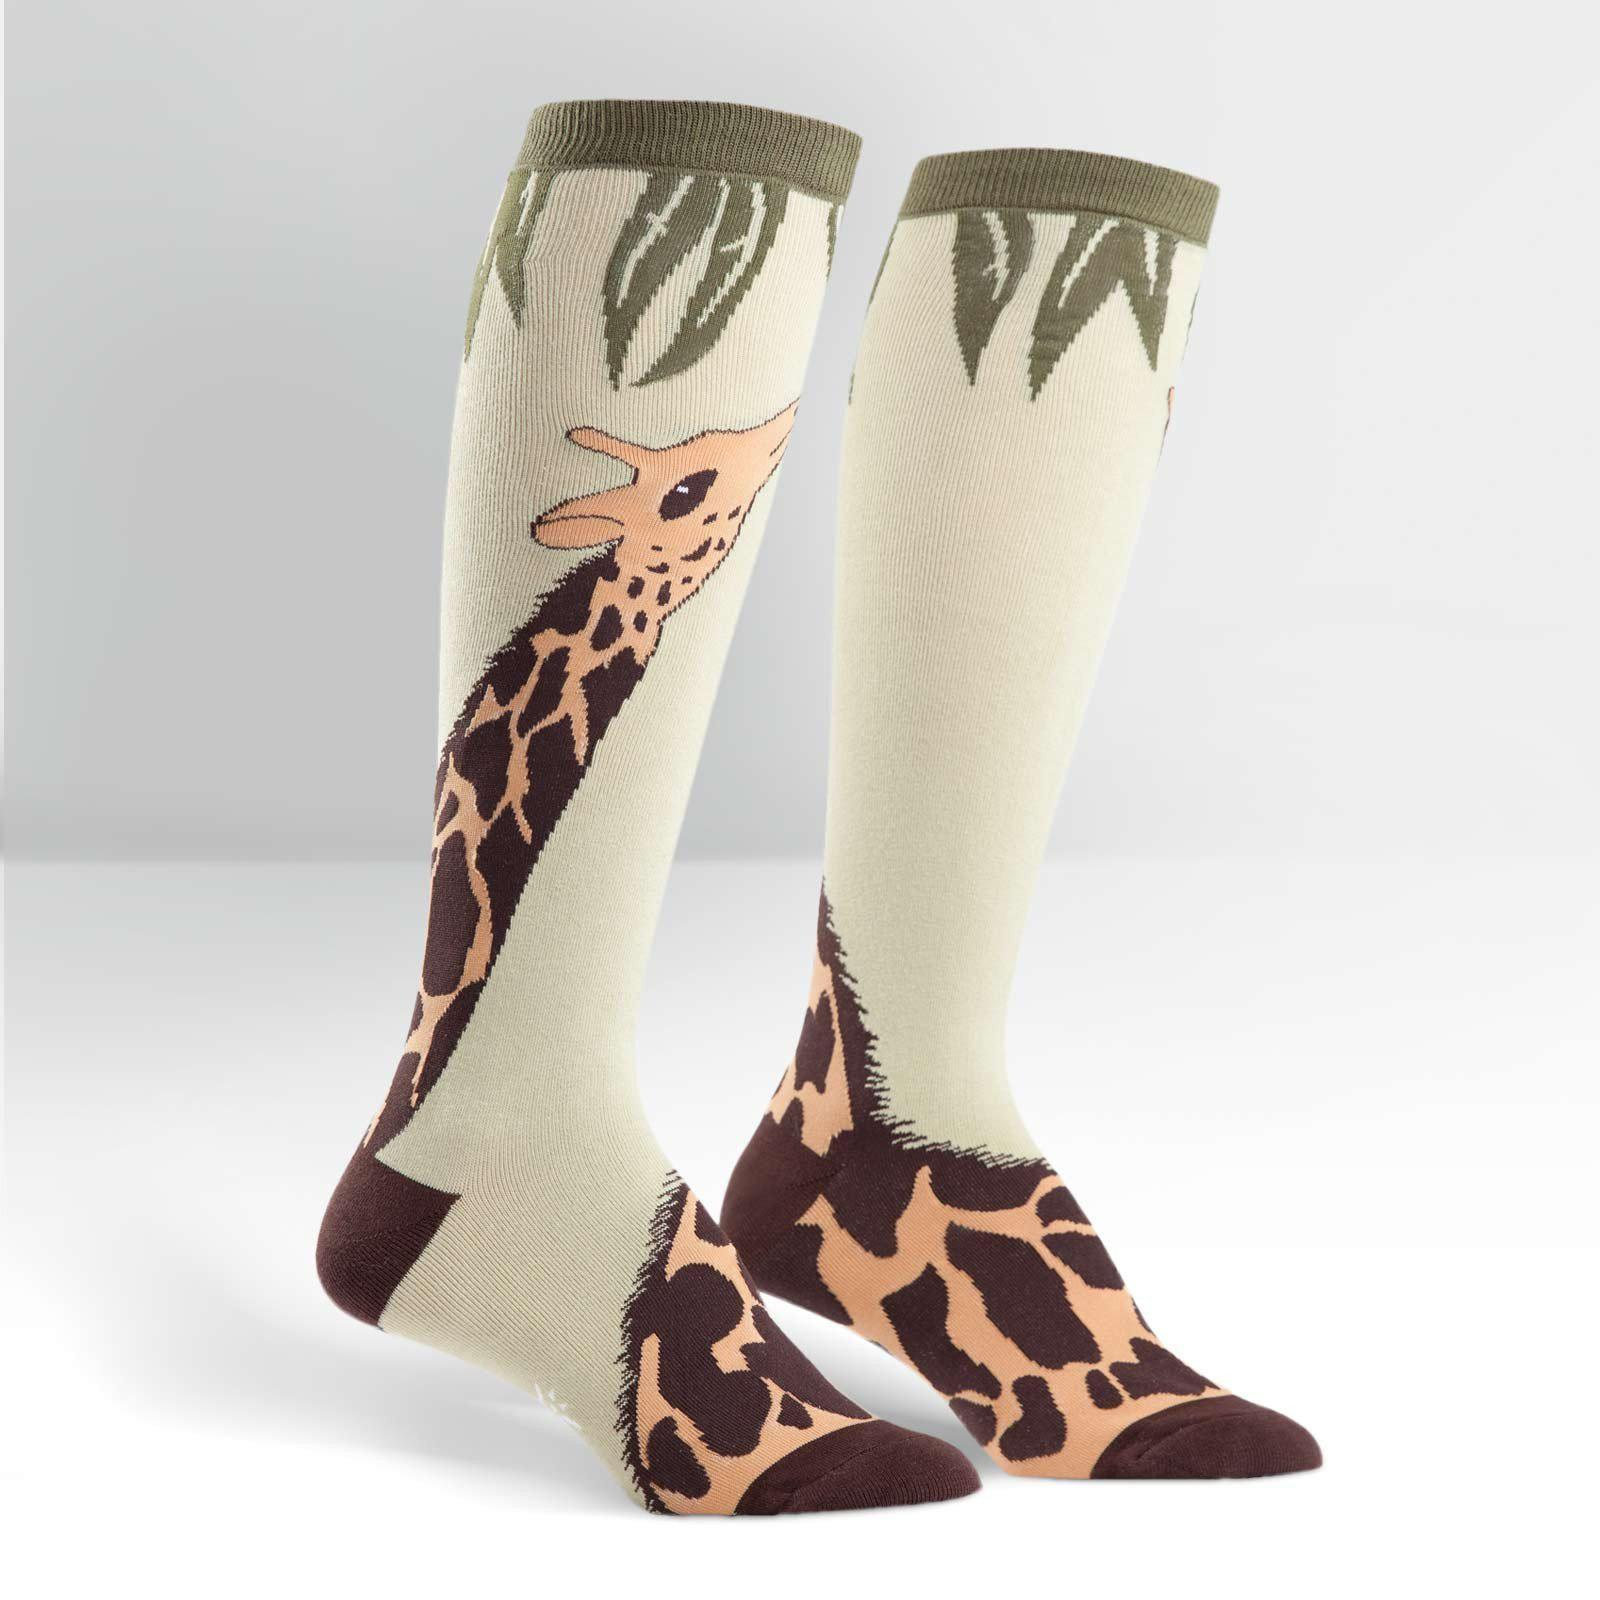 Sock It To Me - Giraffe Knee High Socks | Women's - Knock Your Socks Off